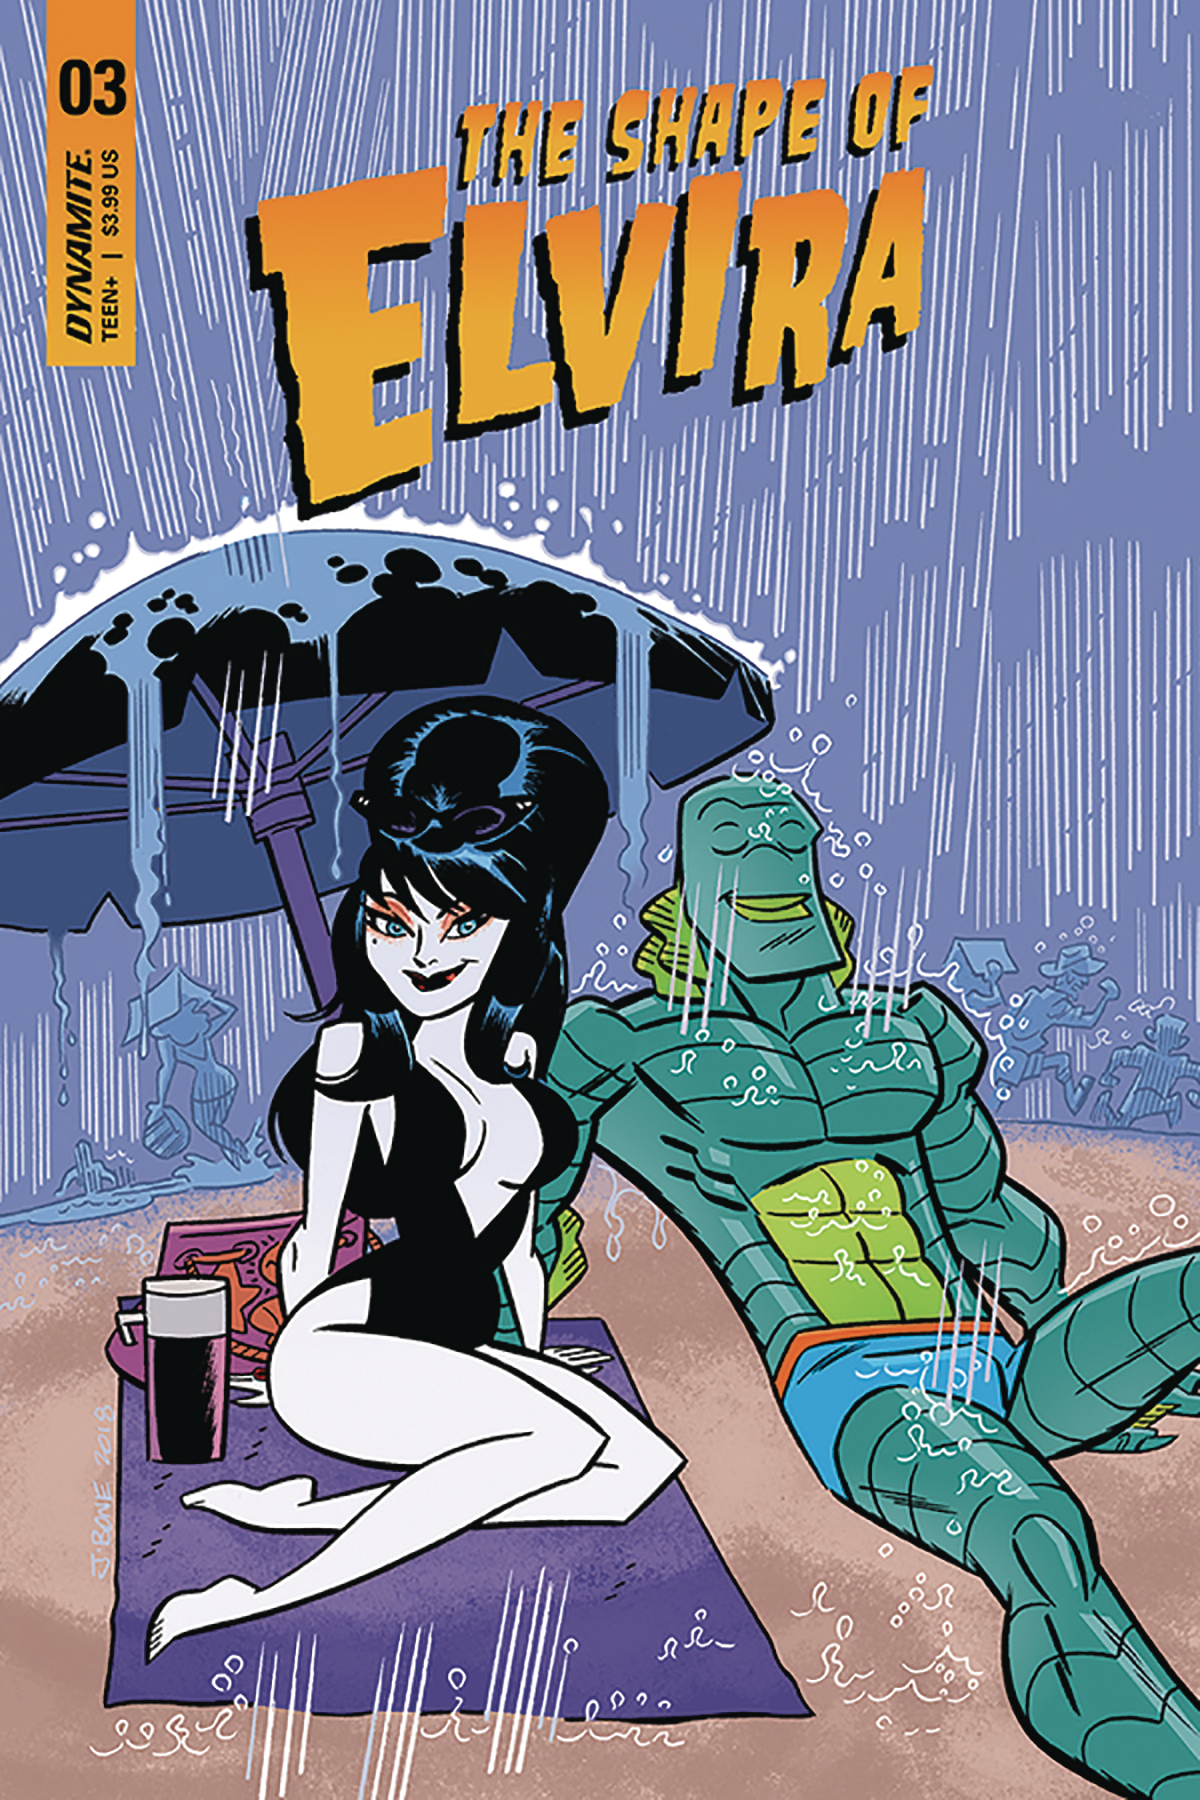 ELVIRA SHAPE OF ELVIRA #3 CVR B J BONE